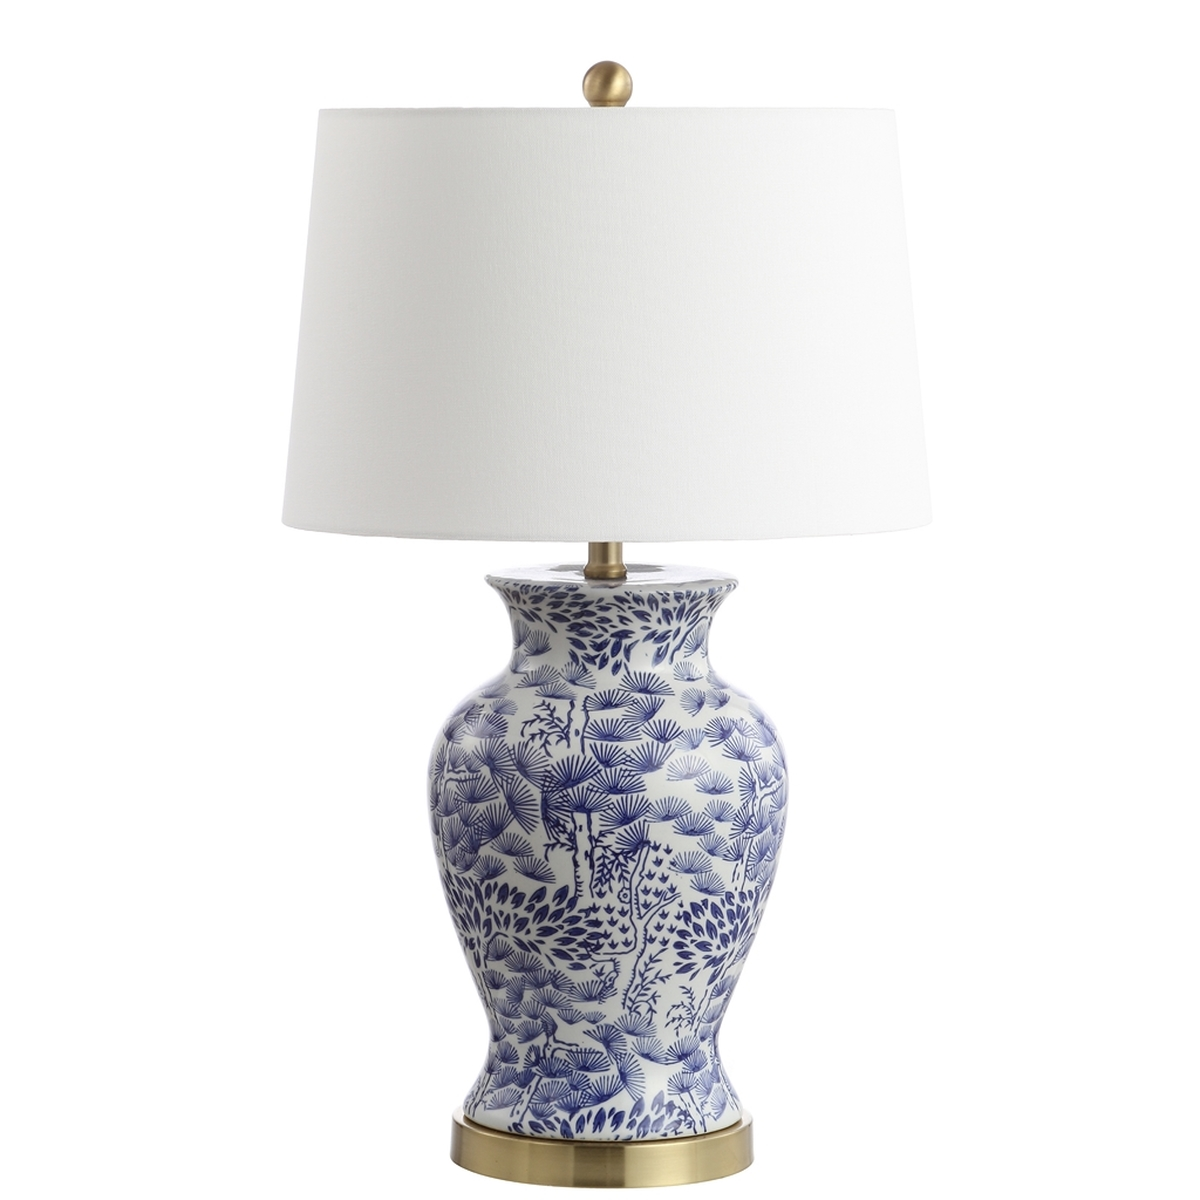 Living room with this classic table lamp rich blue flowers illuminate its white ceramic curves while a crisp complimentary 100 cotton off white shade